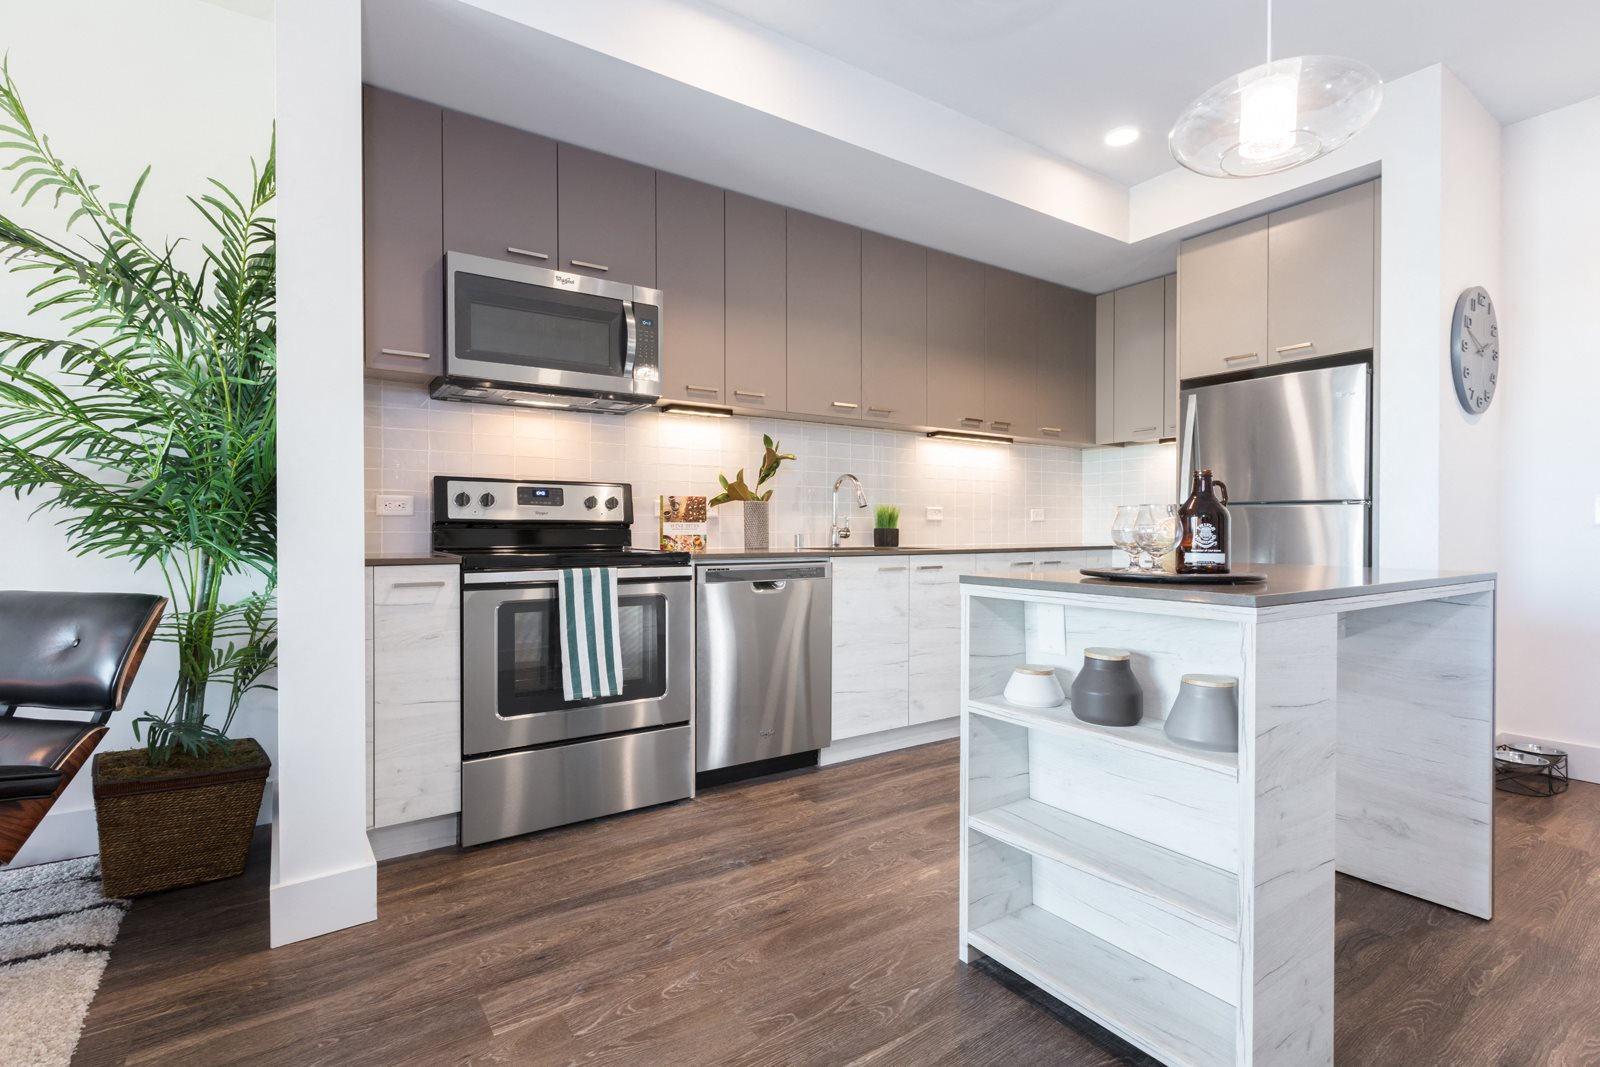 Large, Kitchen Islands Available at Mission Bay by Windsor, 360 Berry Street, San Francisco